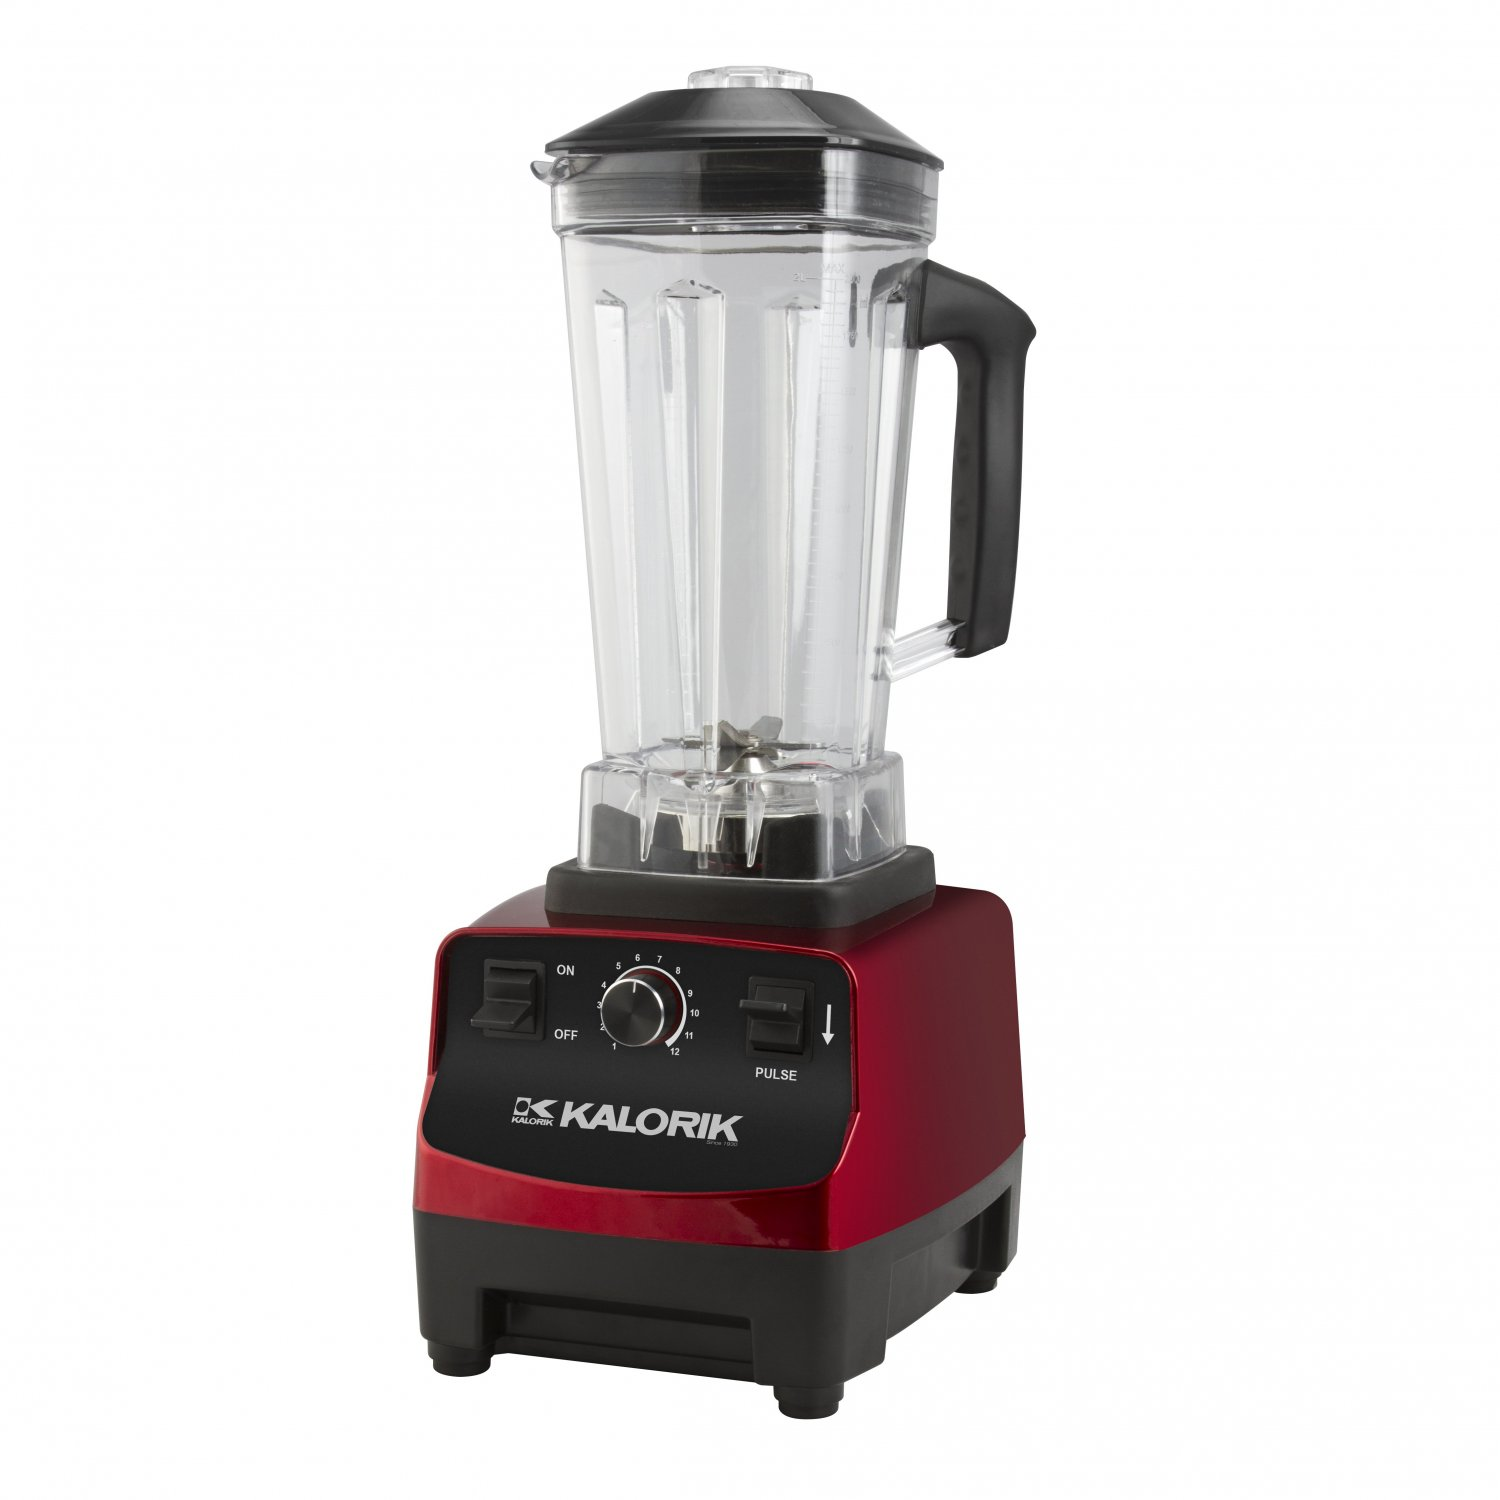 Kalorik Bl 43310 R Red 1500 Series Pro Blender